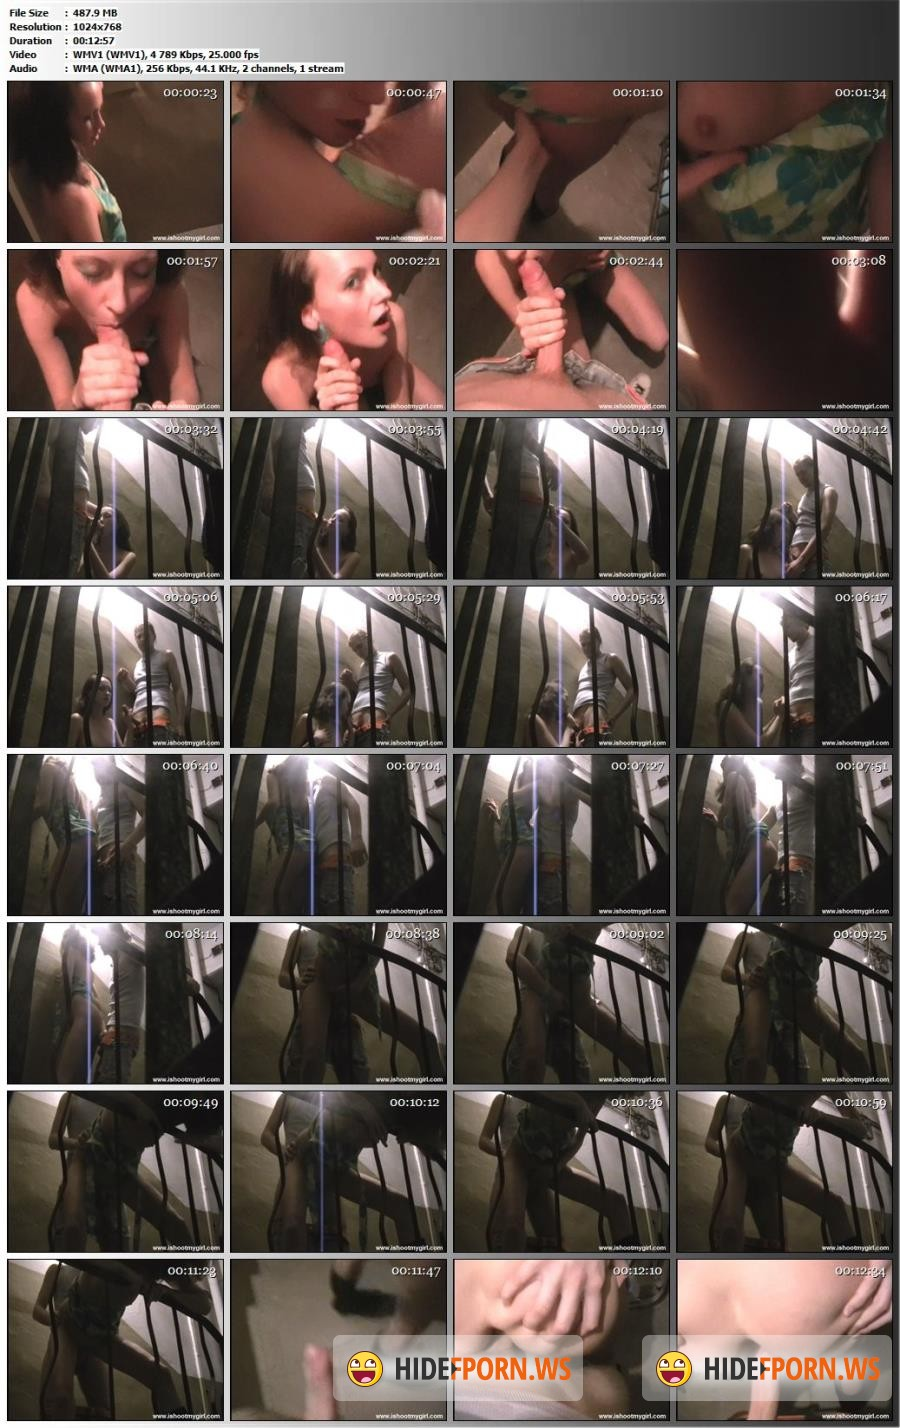 Ishootmygirl.com - Tanya - Home Video Andrew and Tanya [HD 768p]